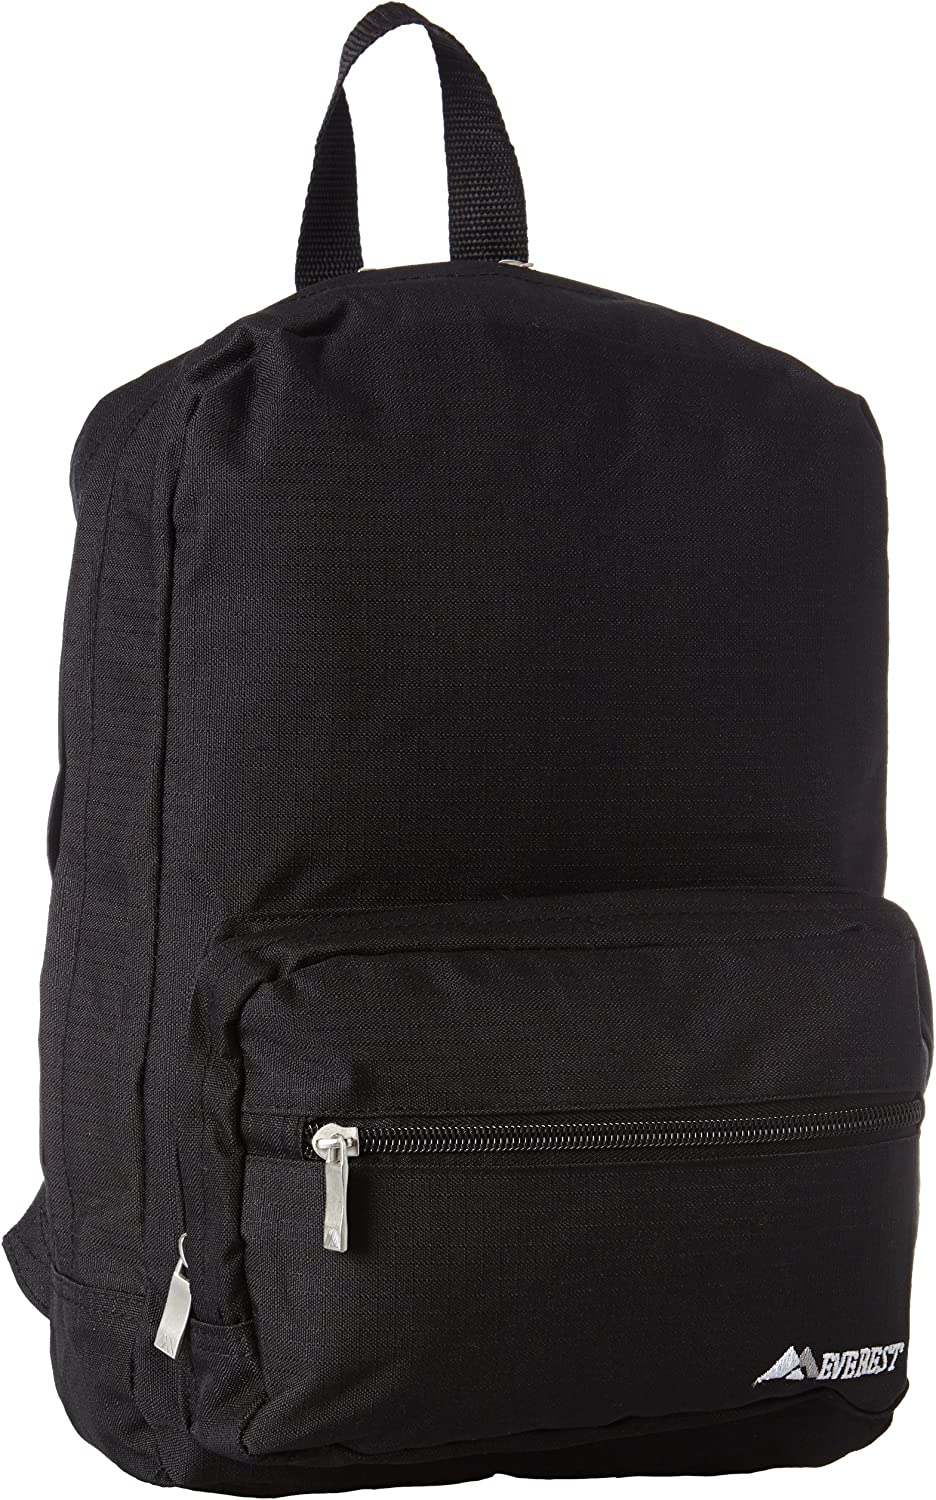 B000ETUQS8 Everest Junior Ripstop Backpack, Black, One Size 91iiWZ2MovL